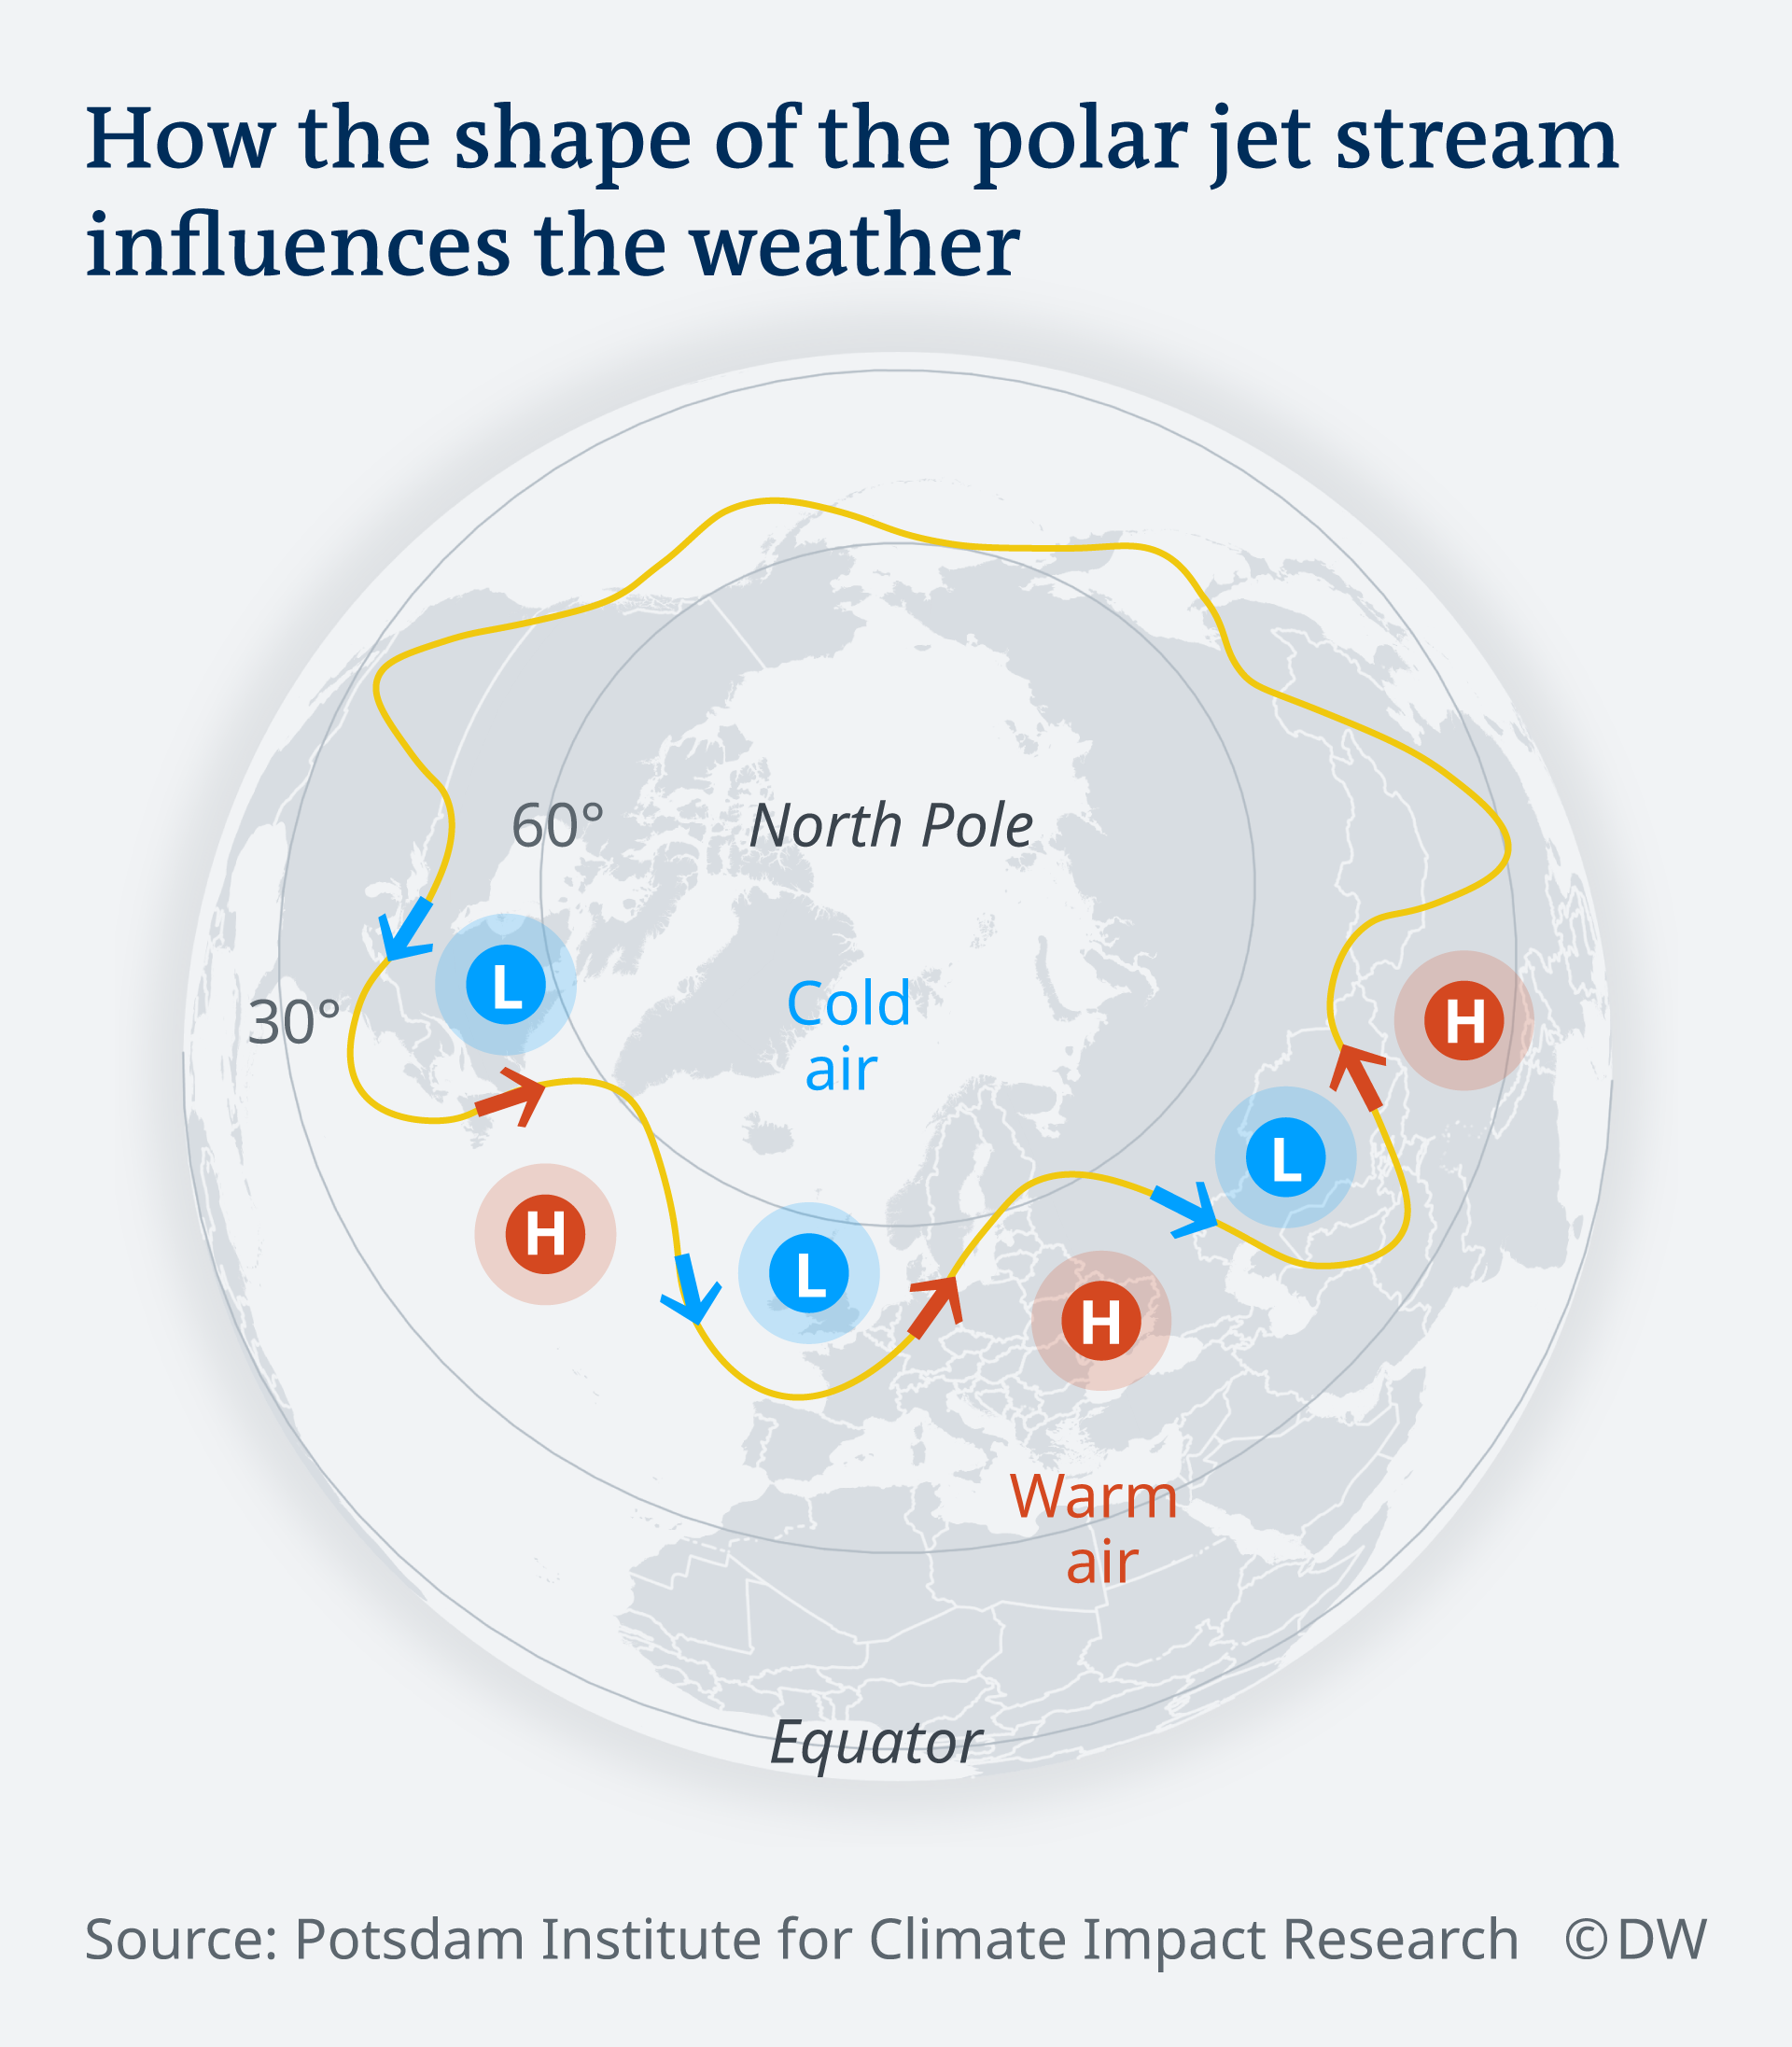 An infographic showing how the shape of the polar jet stream influences the weather